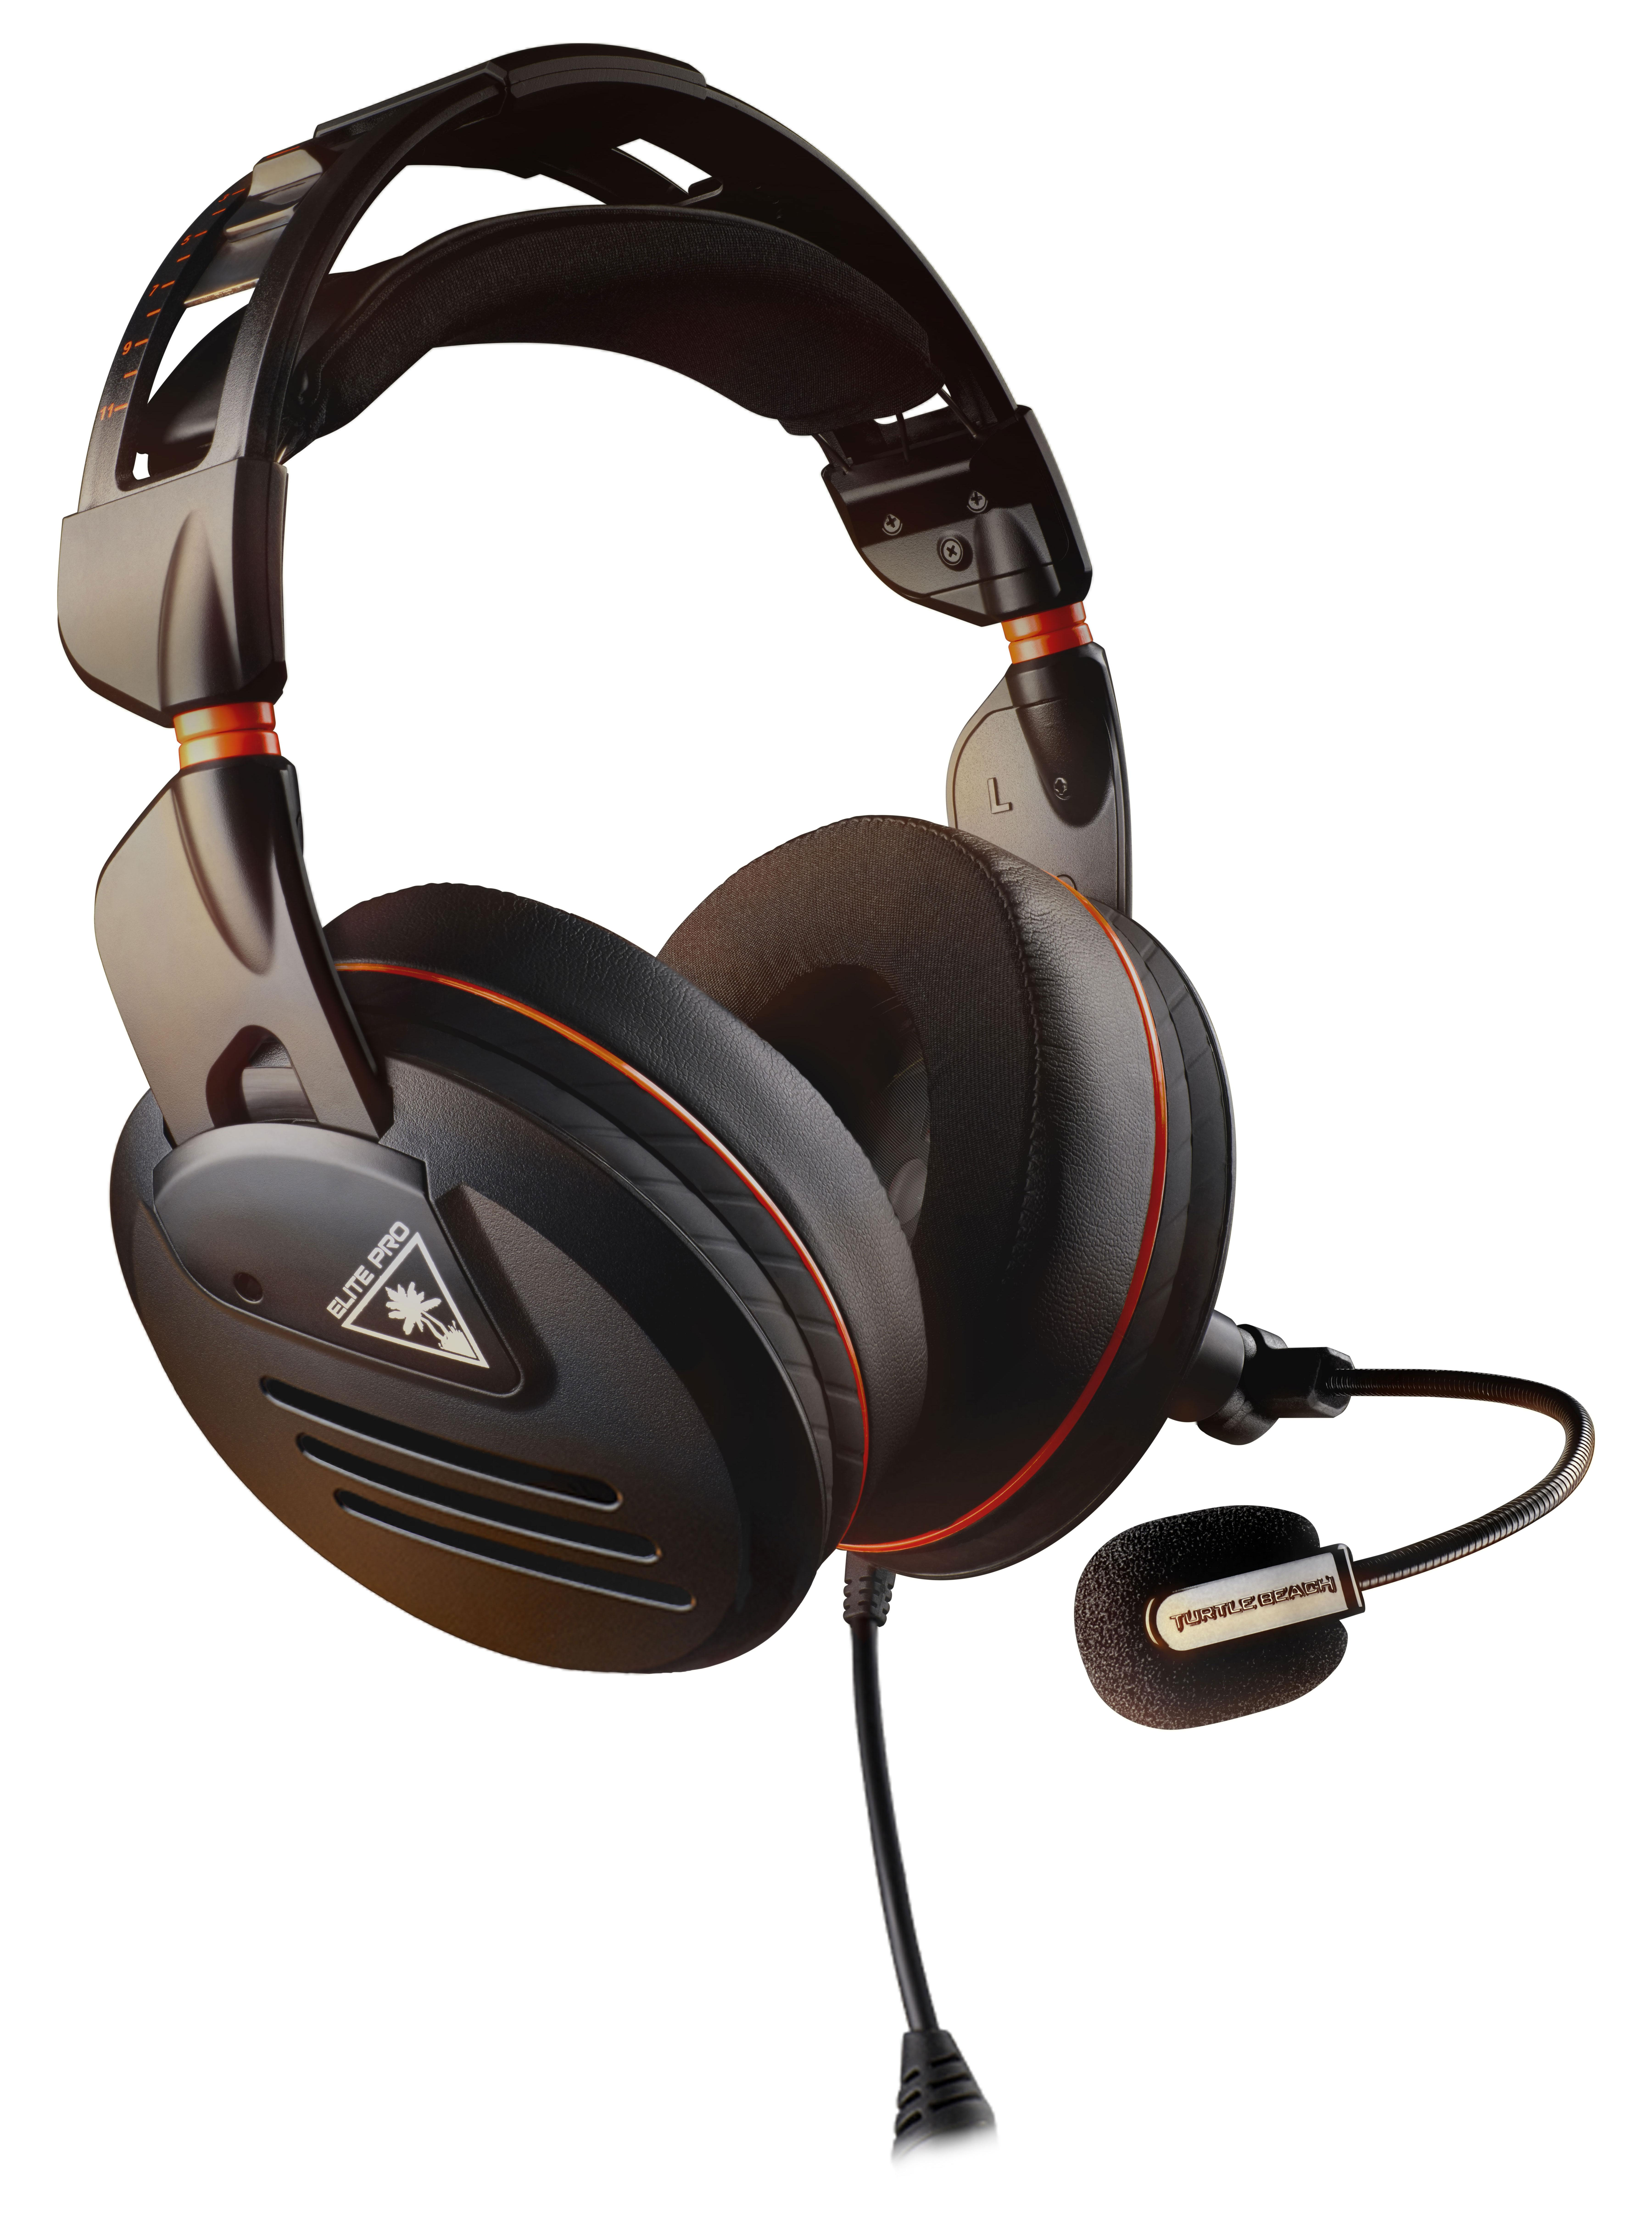 how to use xbox one headset on ps4